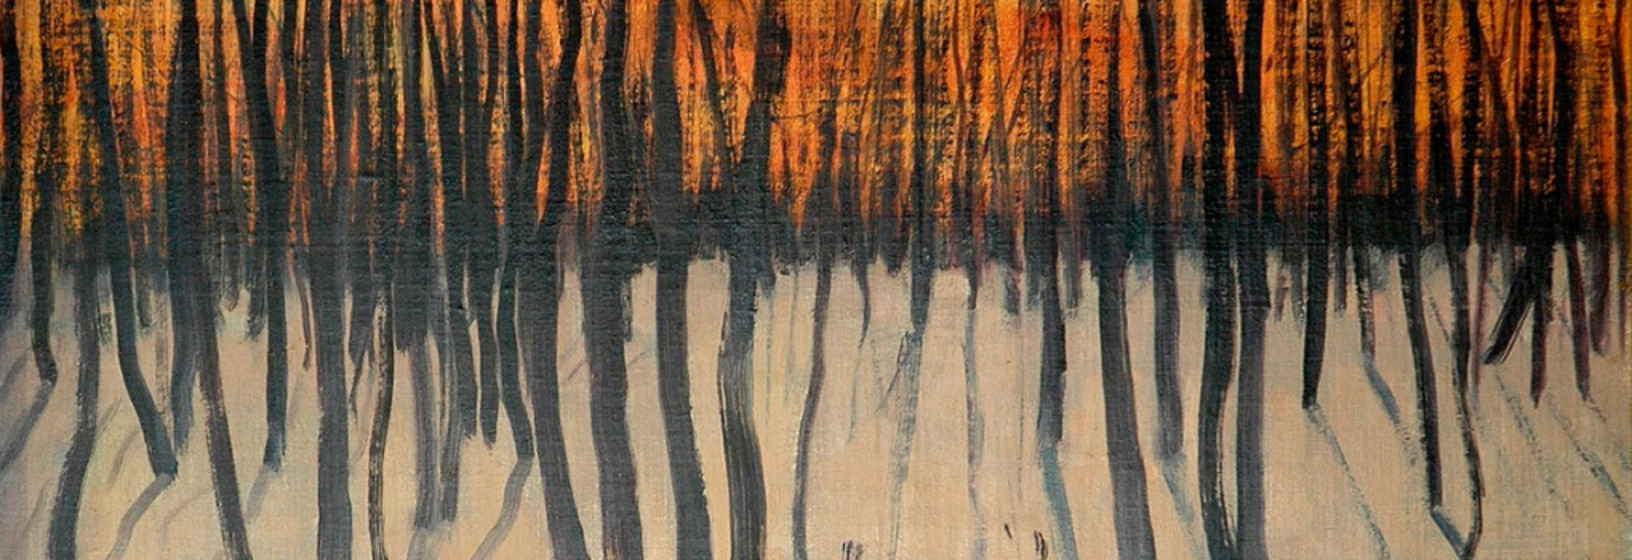 a painting of burnt trees with orange fire at the horizon